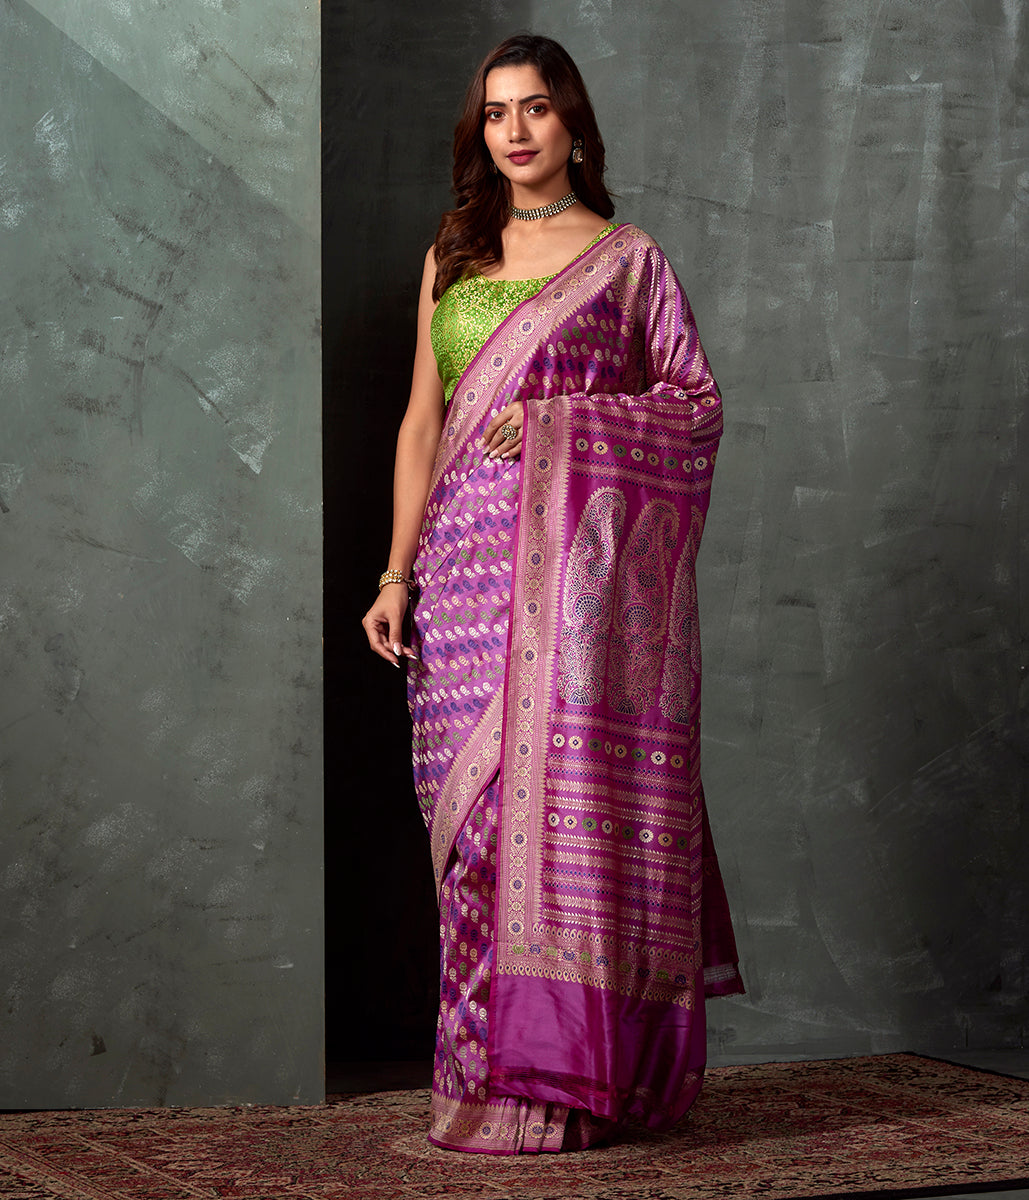 Handwoven Banaras Baluchari in Mauve with Small Floral Booti and Kalka Pallu